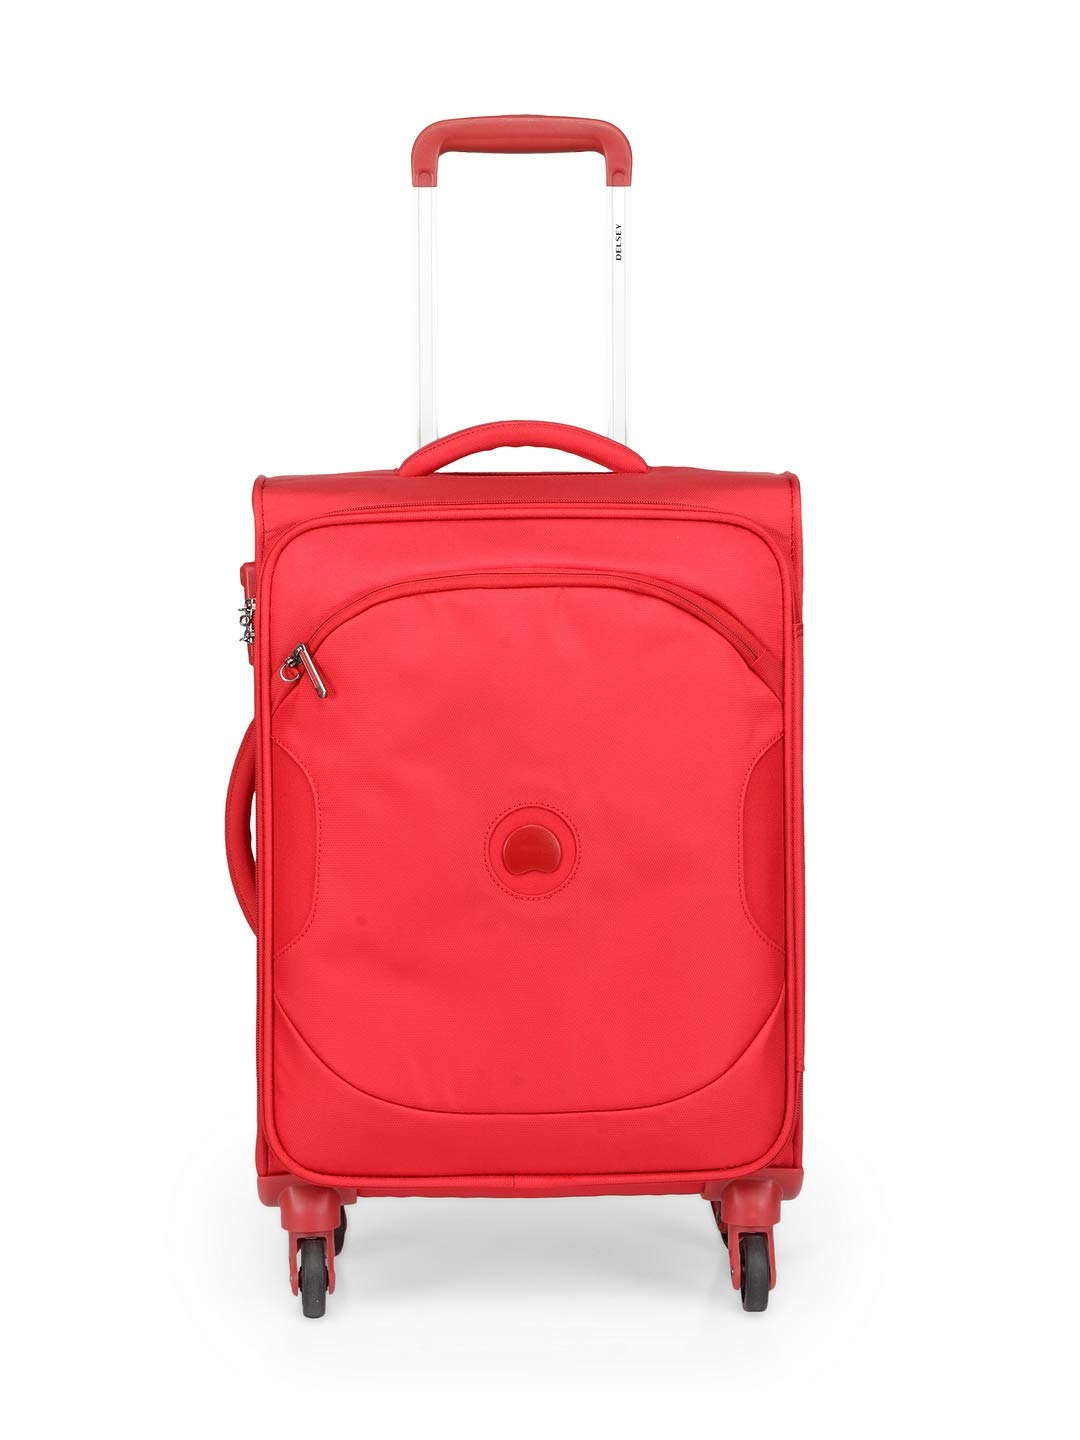 Delsey Polyester 55 Cms Red Softsided Cabin Luggage (U-LITE Classic 3)